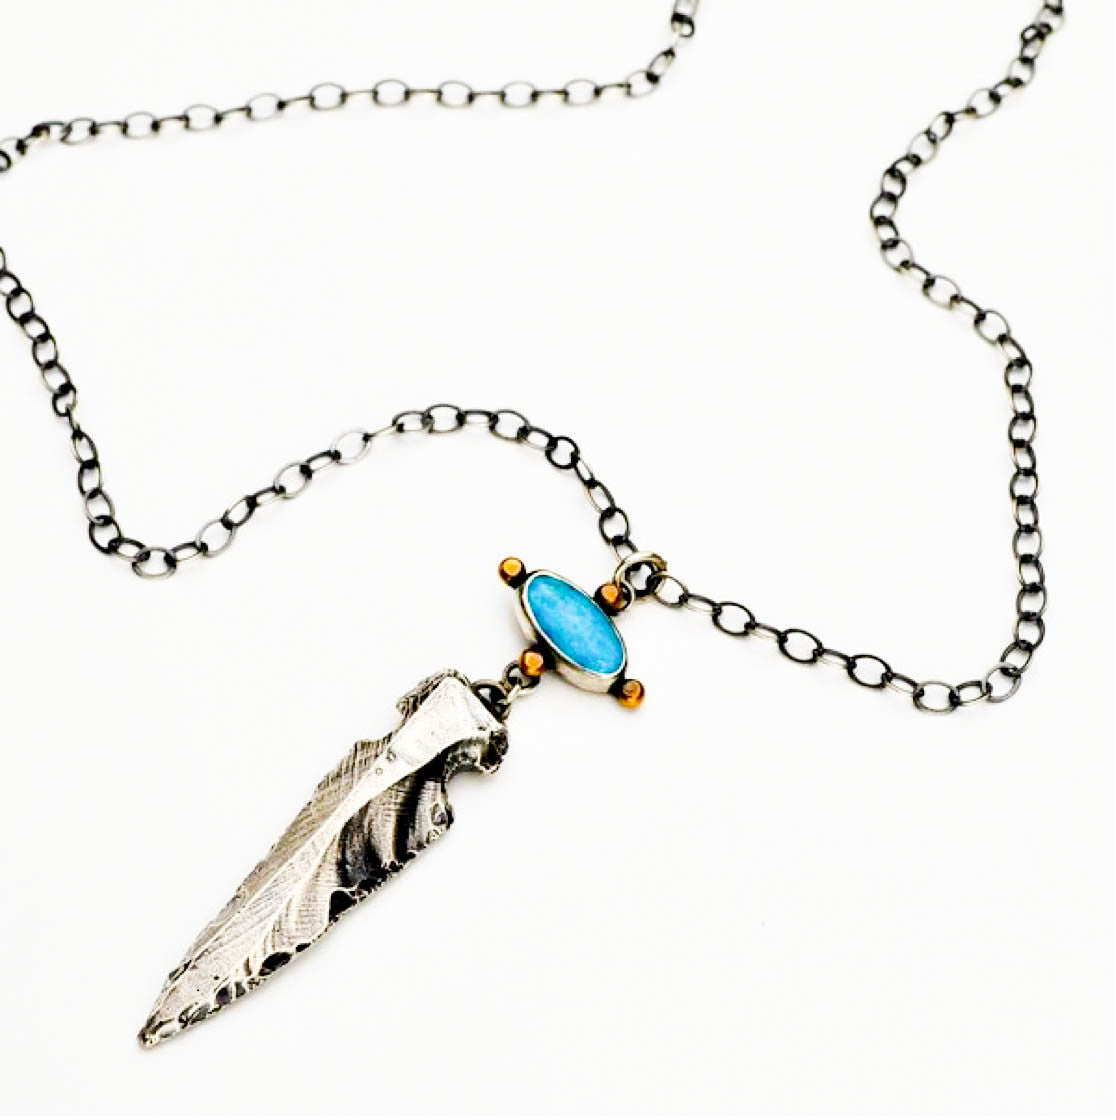 Arrowhead Adventurer Necklace - Meltdown Studio Jewelry